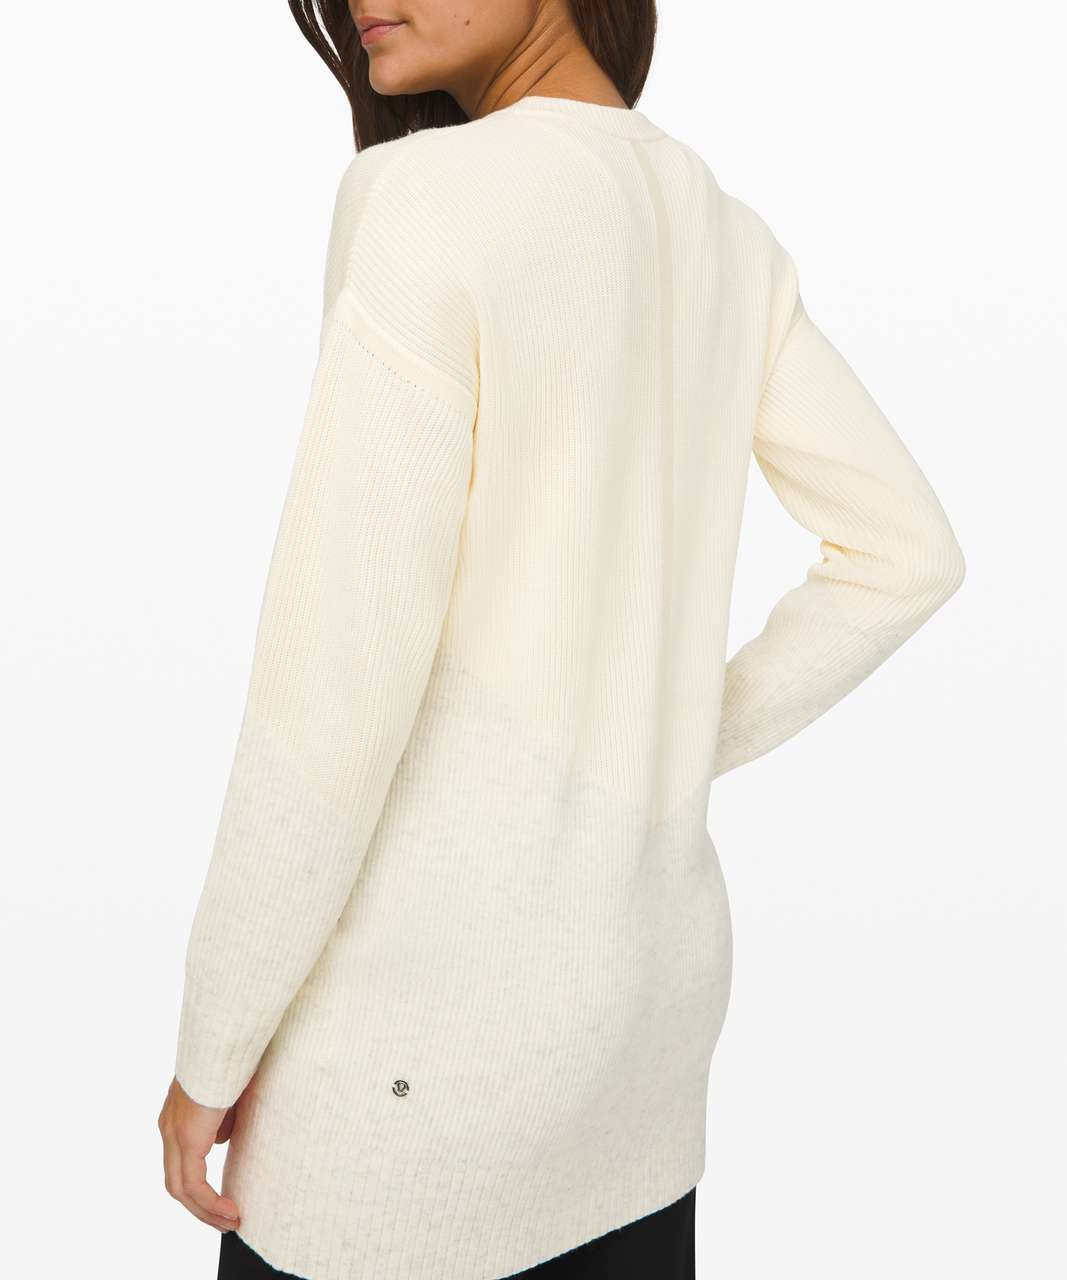 Lululemon Restful Intention Sweater - Angel Wing / Heathered Light Ivory